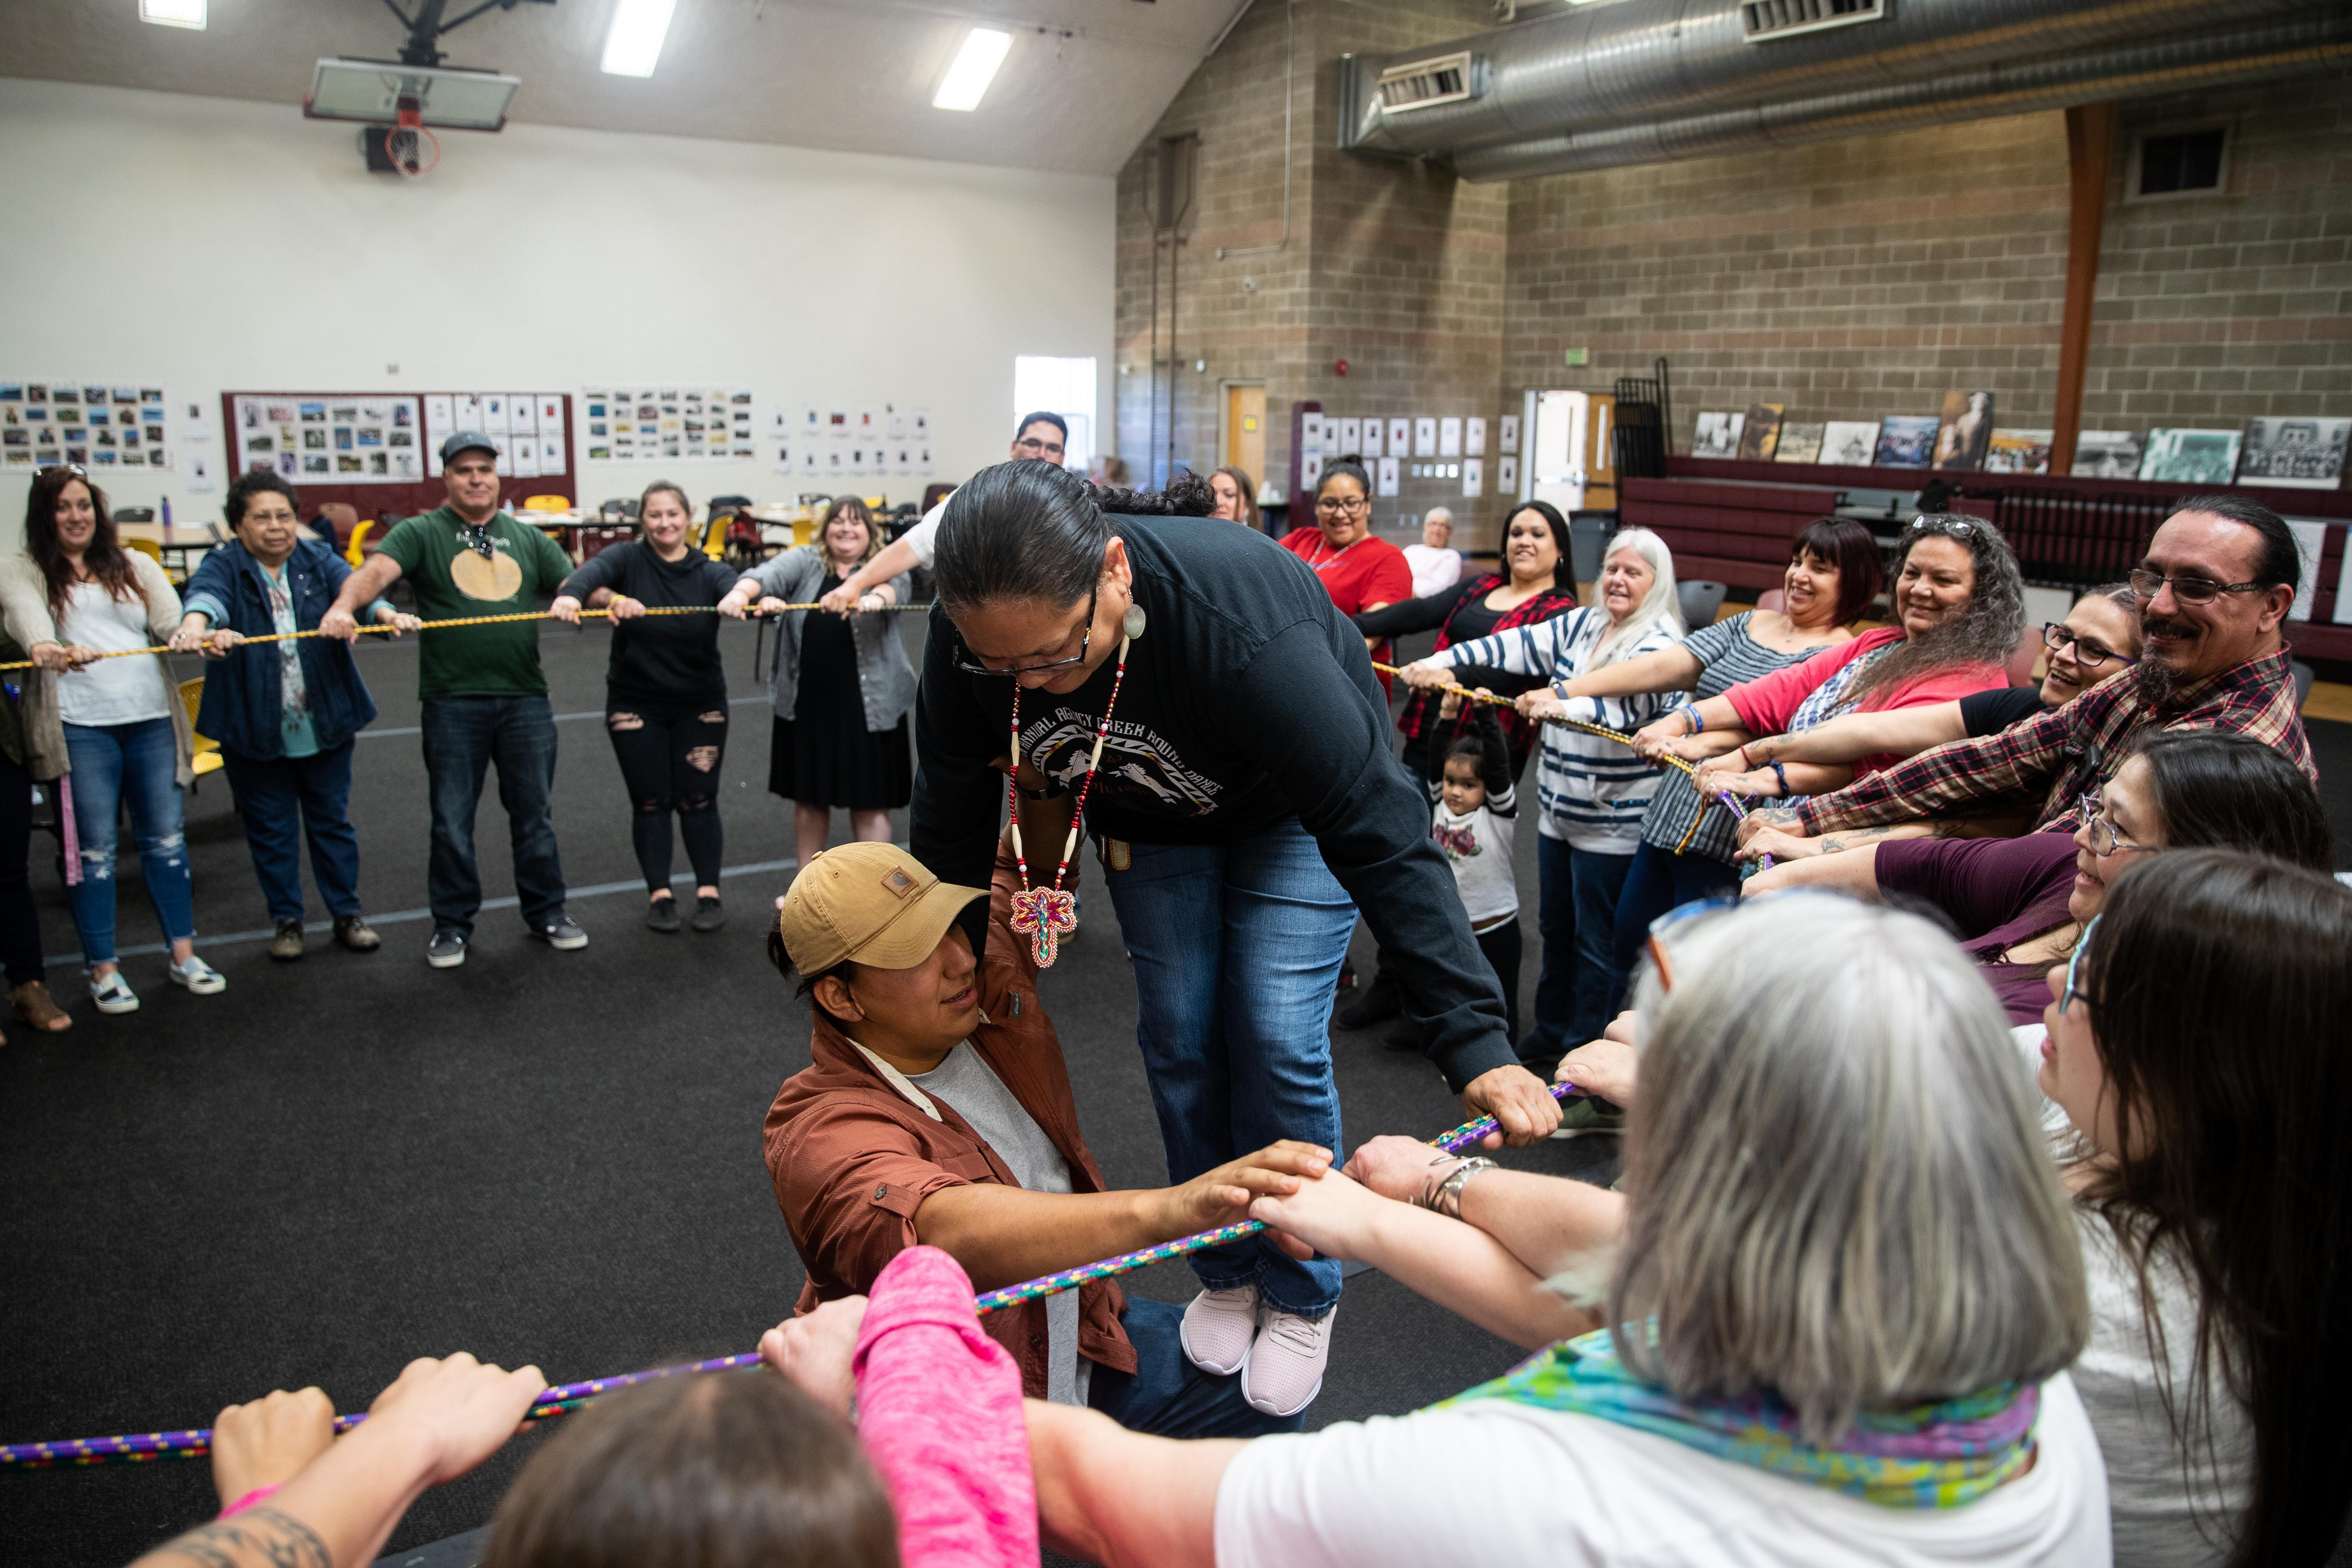 Josh Cocker helps Kimberly Contreras gain her balance on the ropes. This exercise is meant to deepen the community's understanding of interdependency.